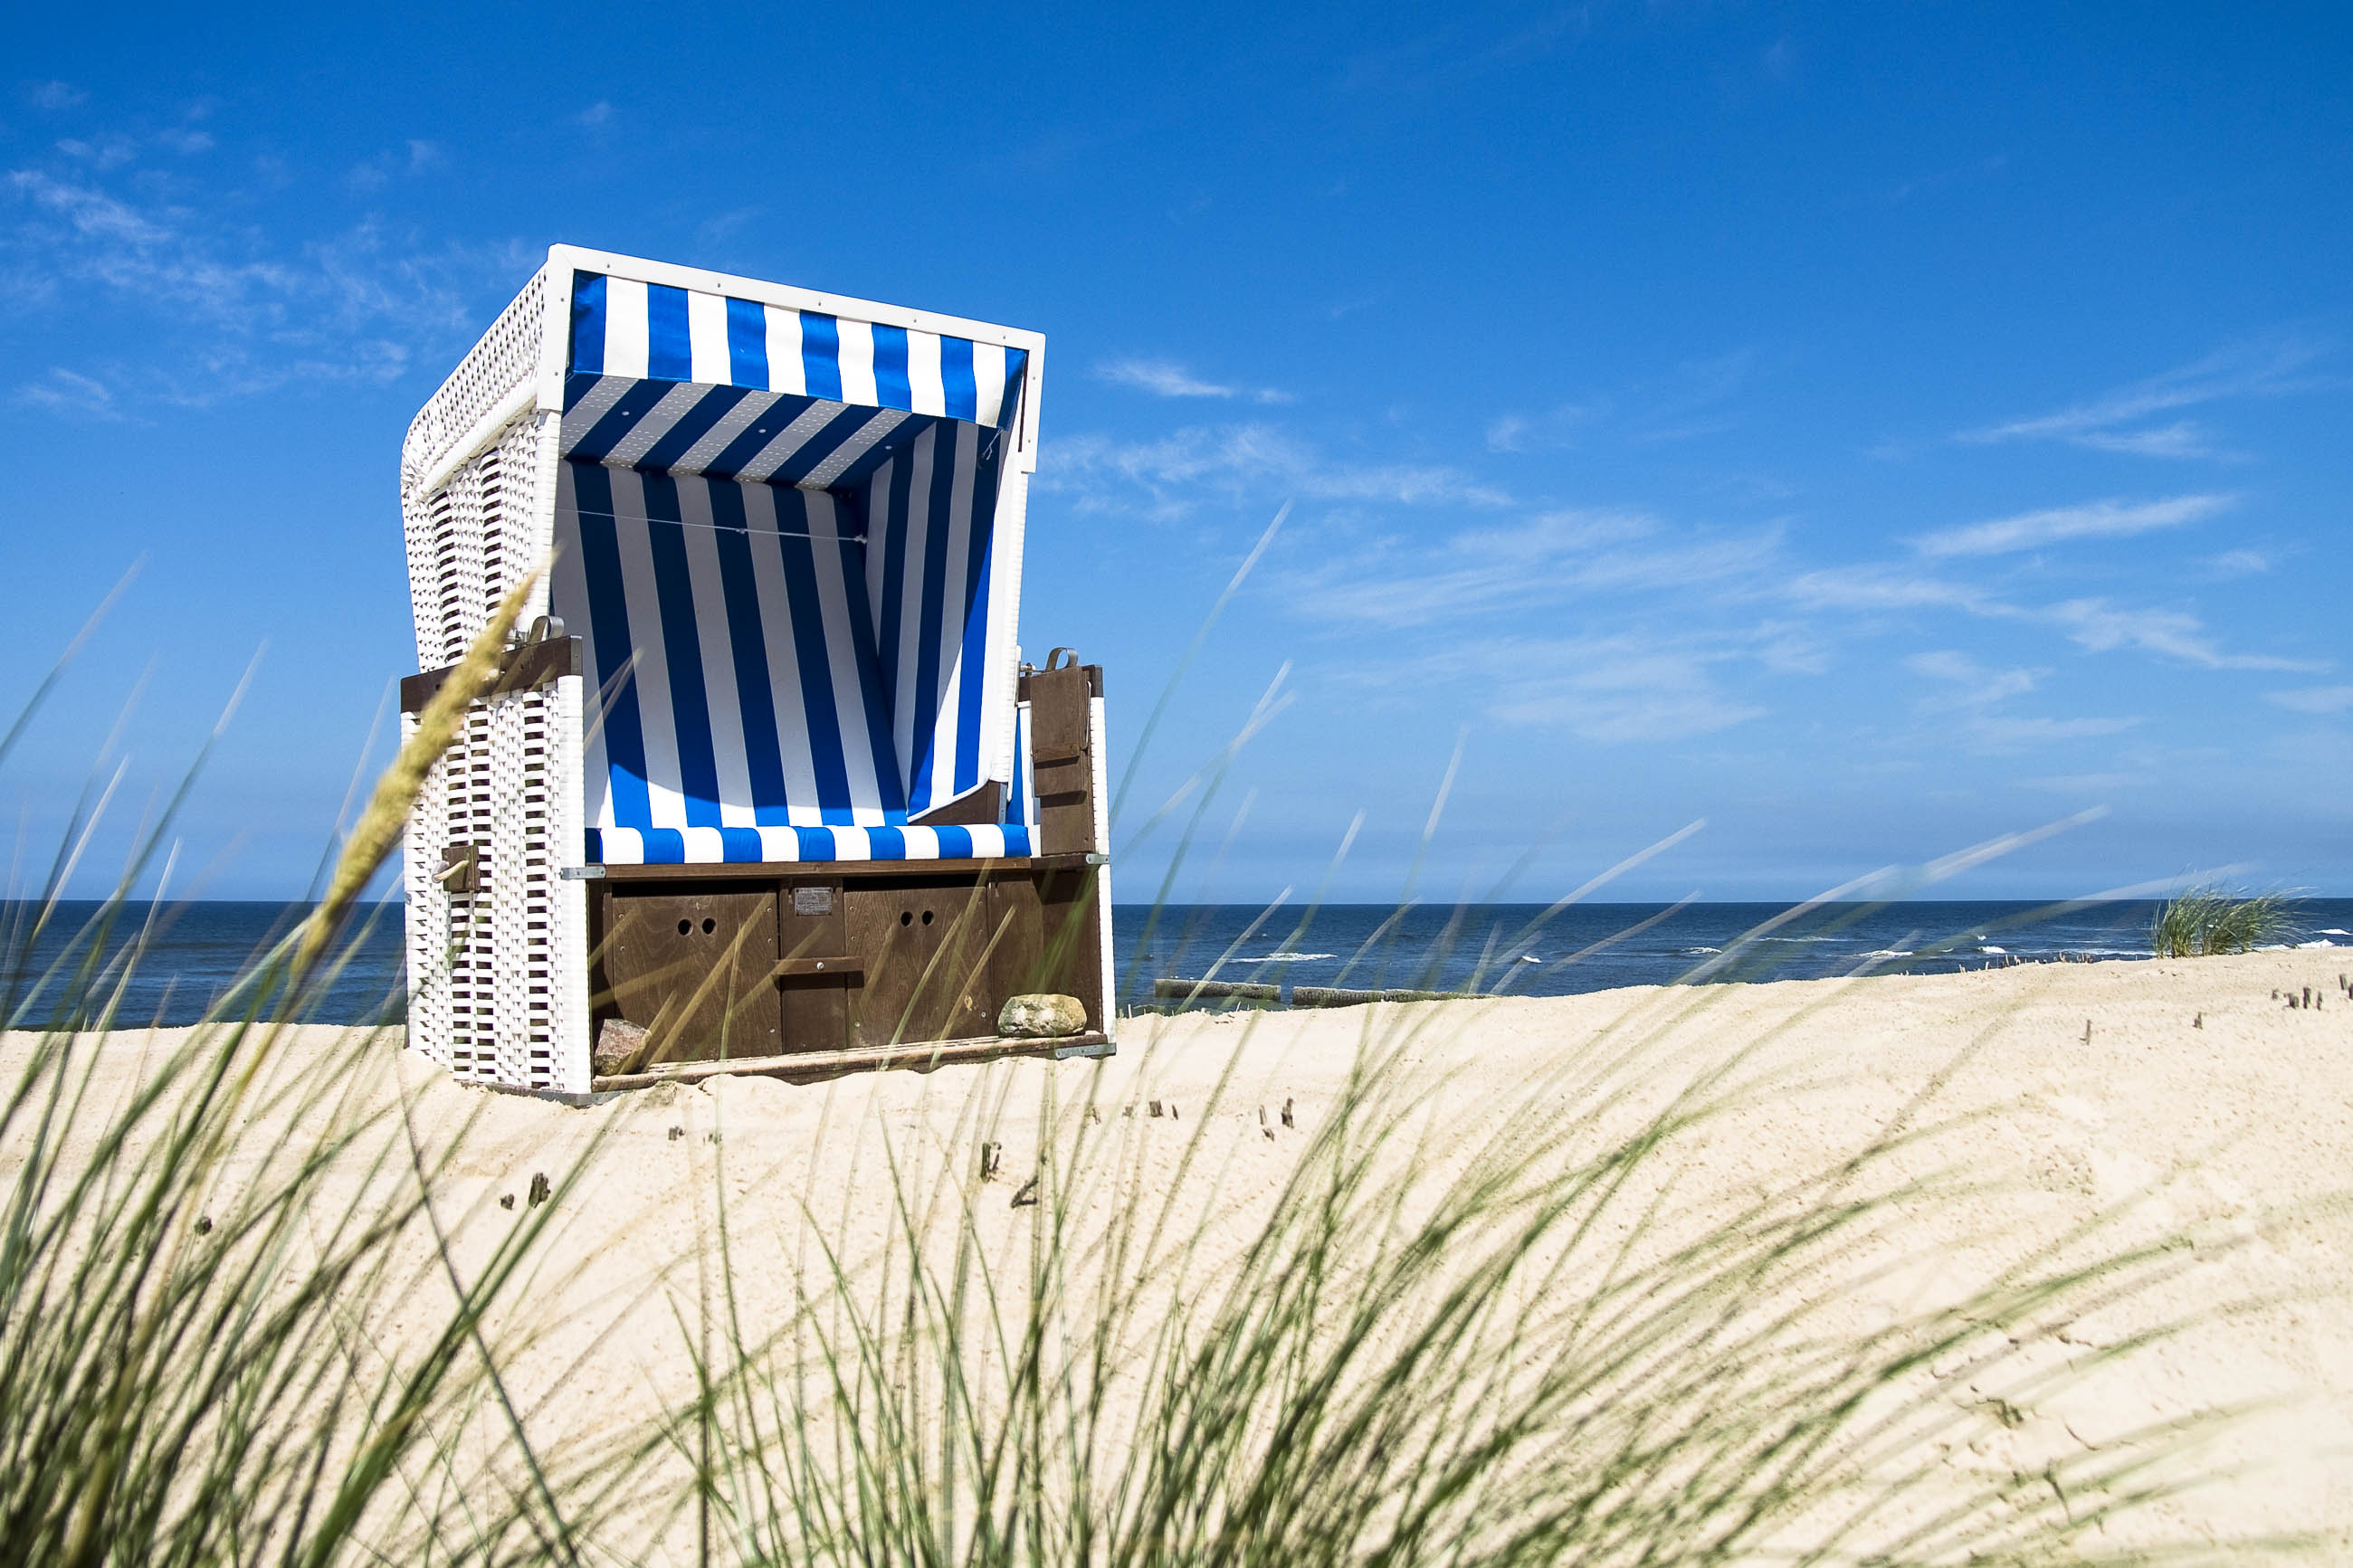 bilder insel sylt deutschland franks travelbox. Black Bedroom Furniture Sets. Home Design Ideas